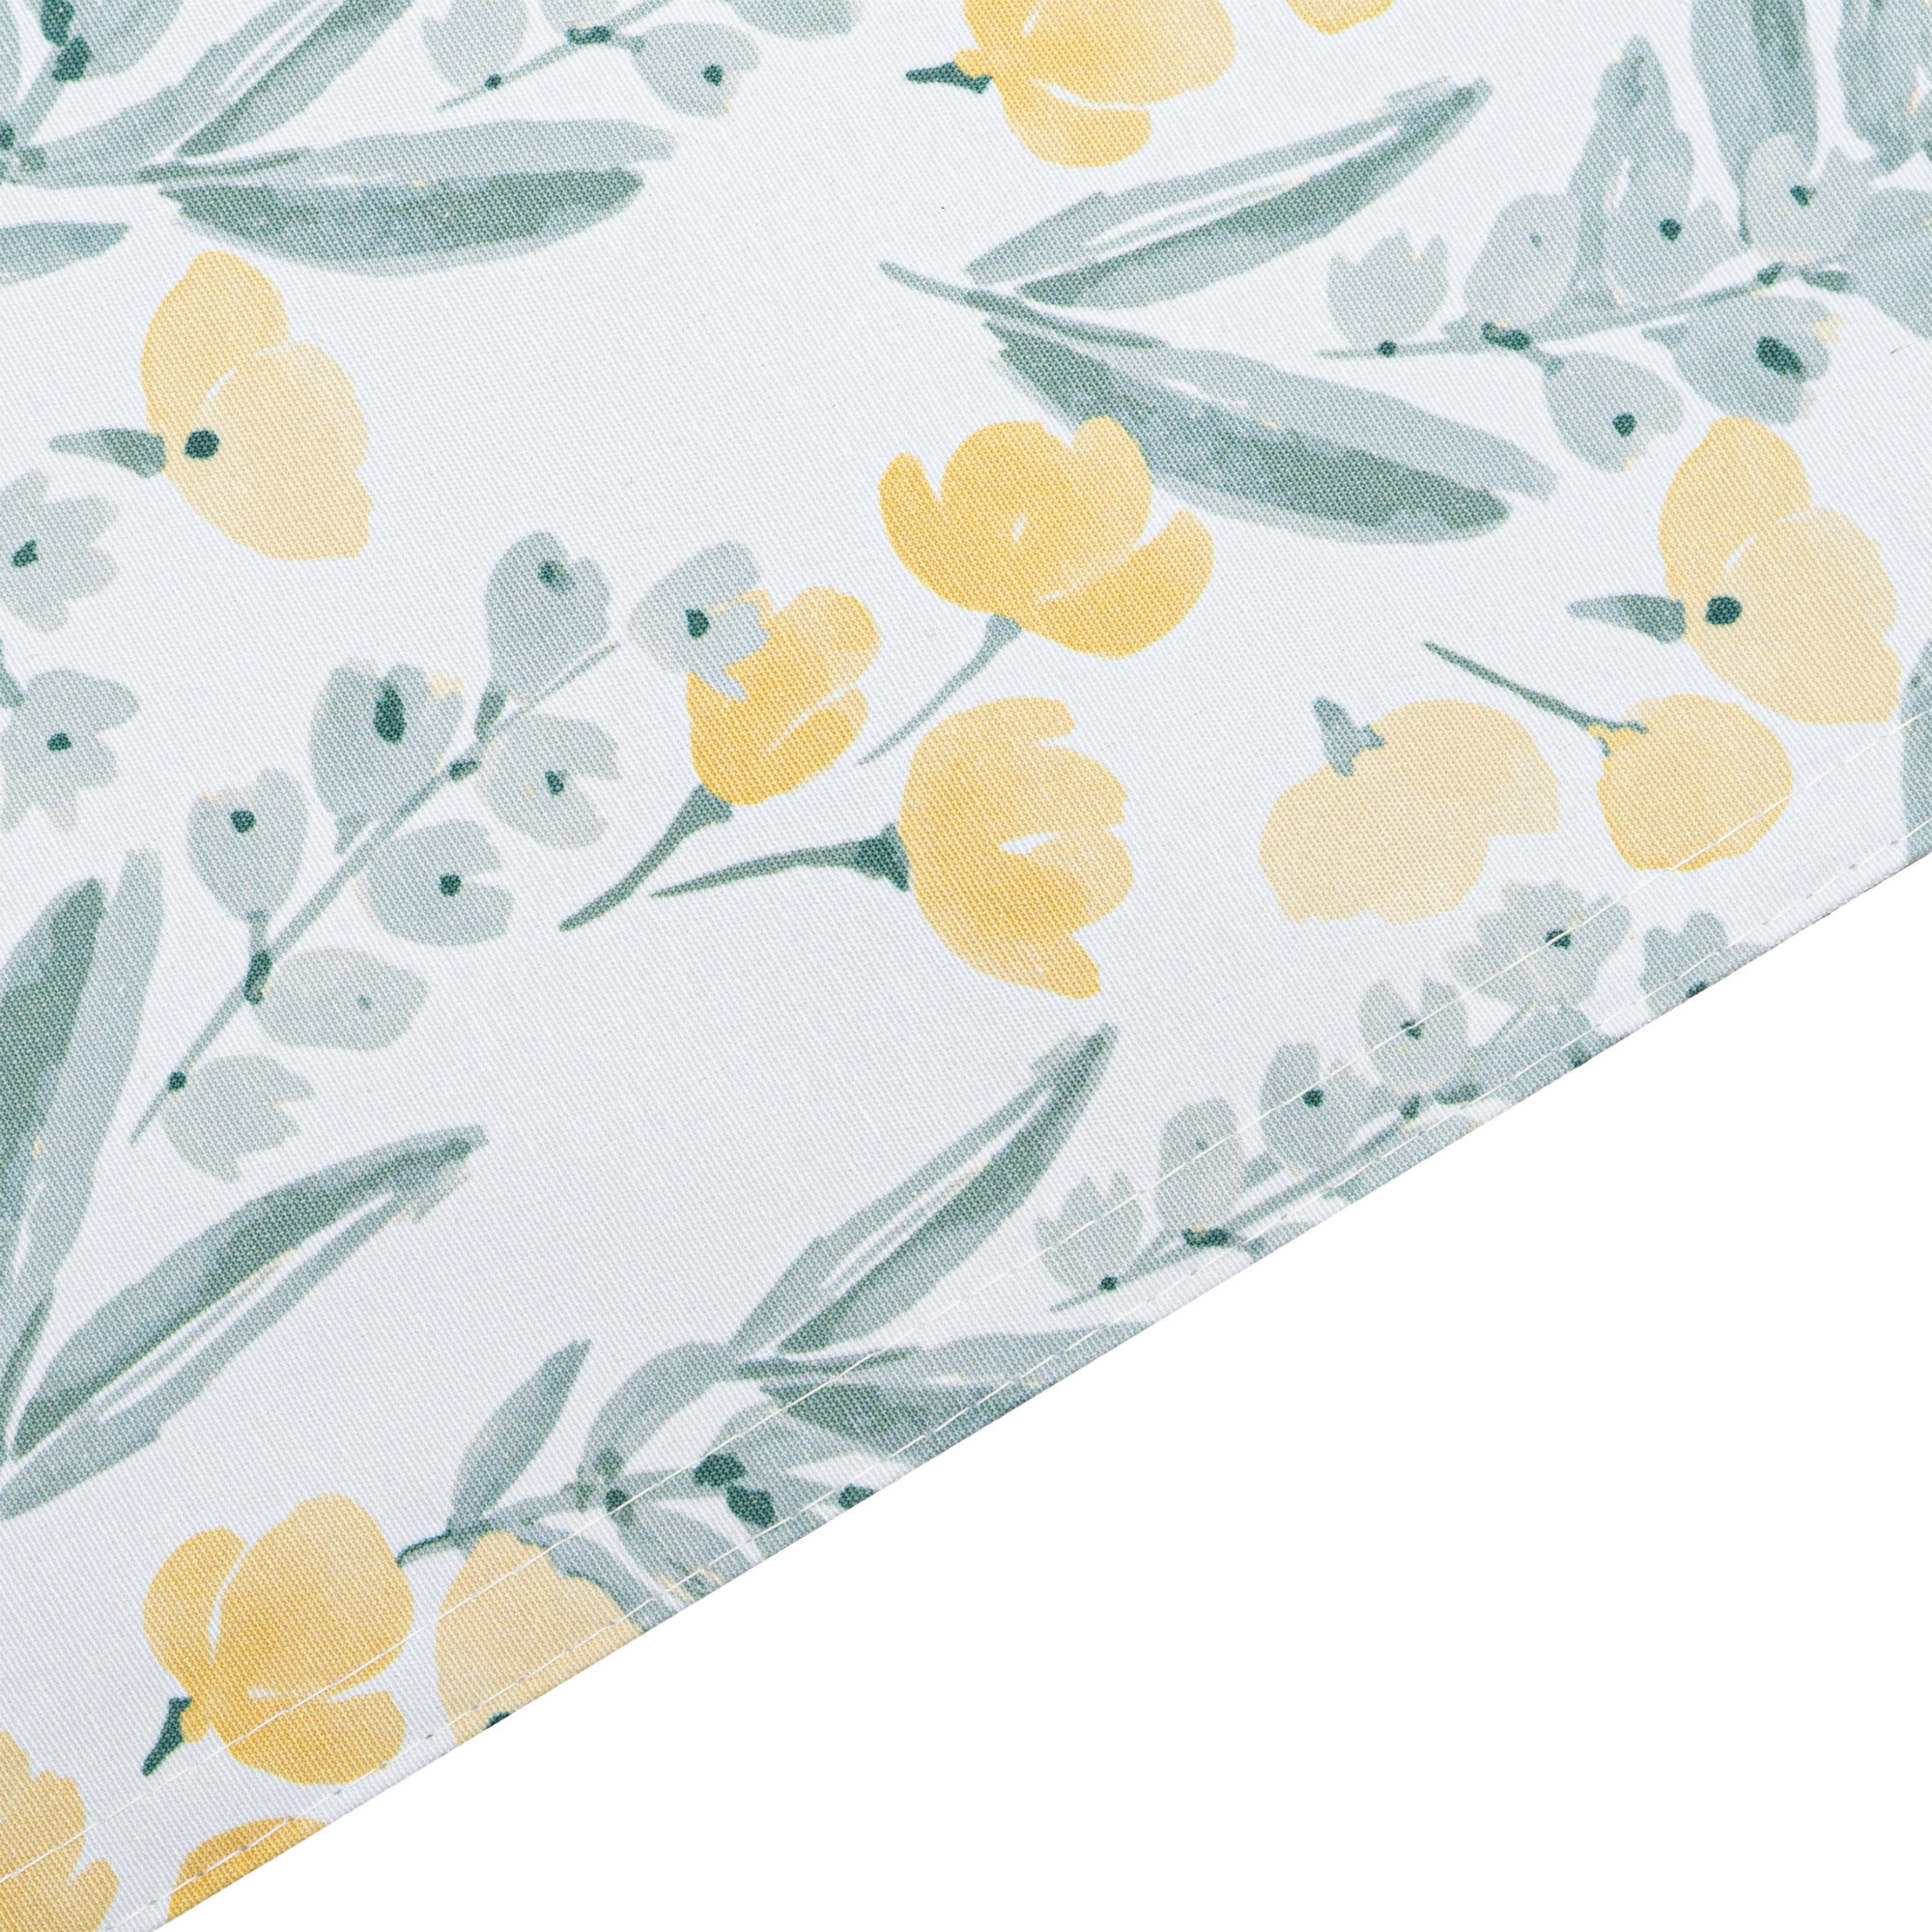 Flora Printed Rectangle Placemats/Table Mats With Solid Lining 30x45cm. Polycotton. Multi-Color (Set Of 2,4 Or 6)